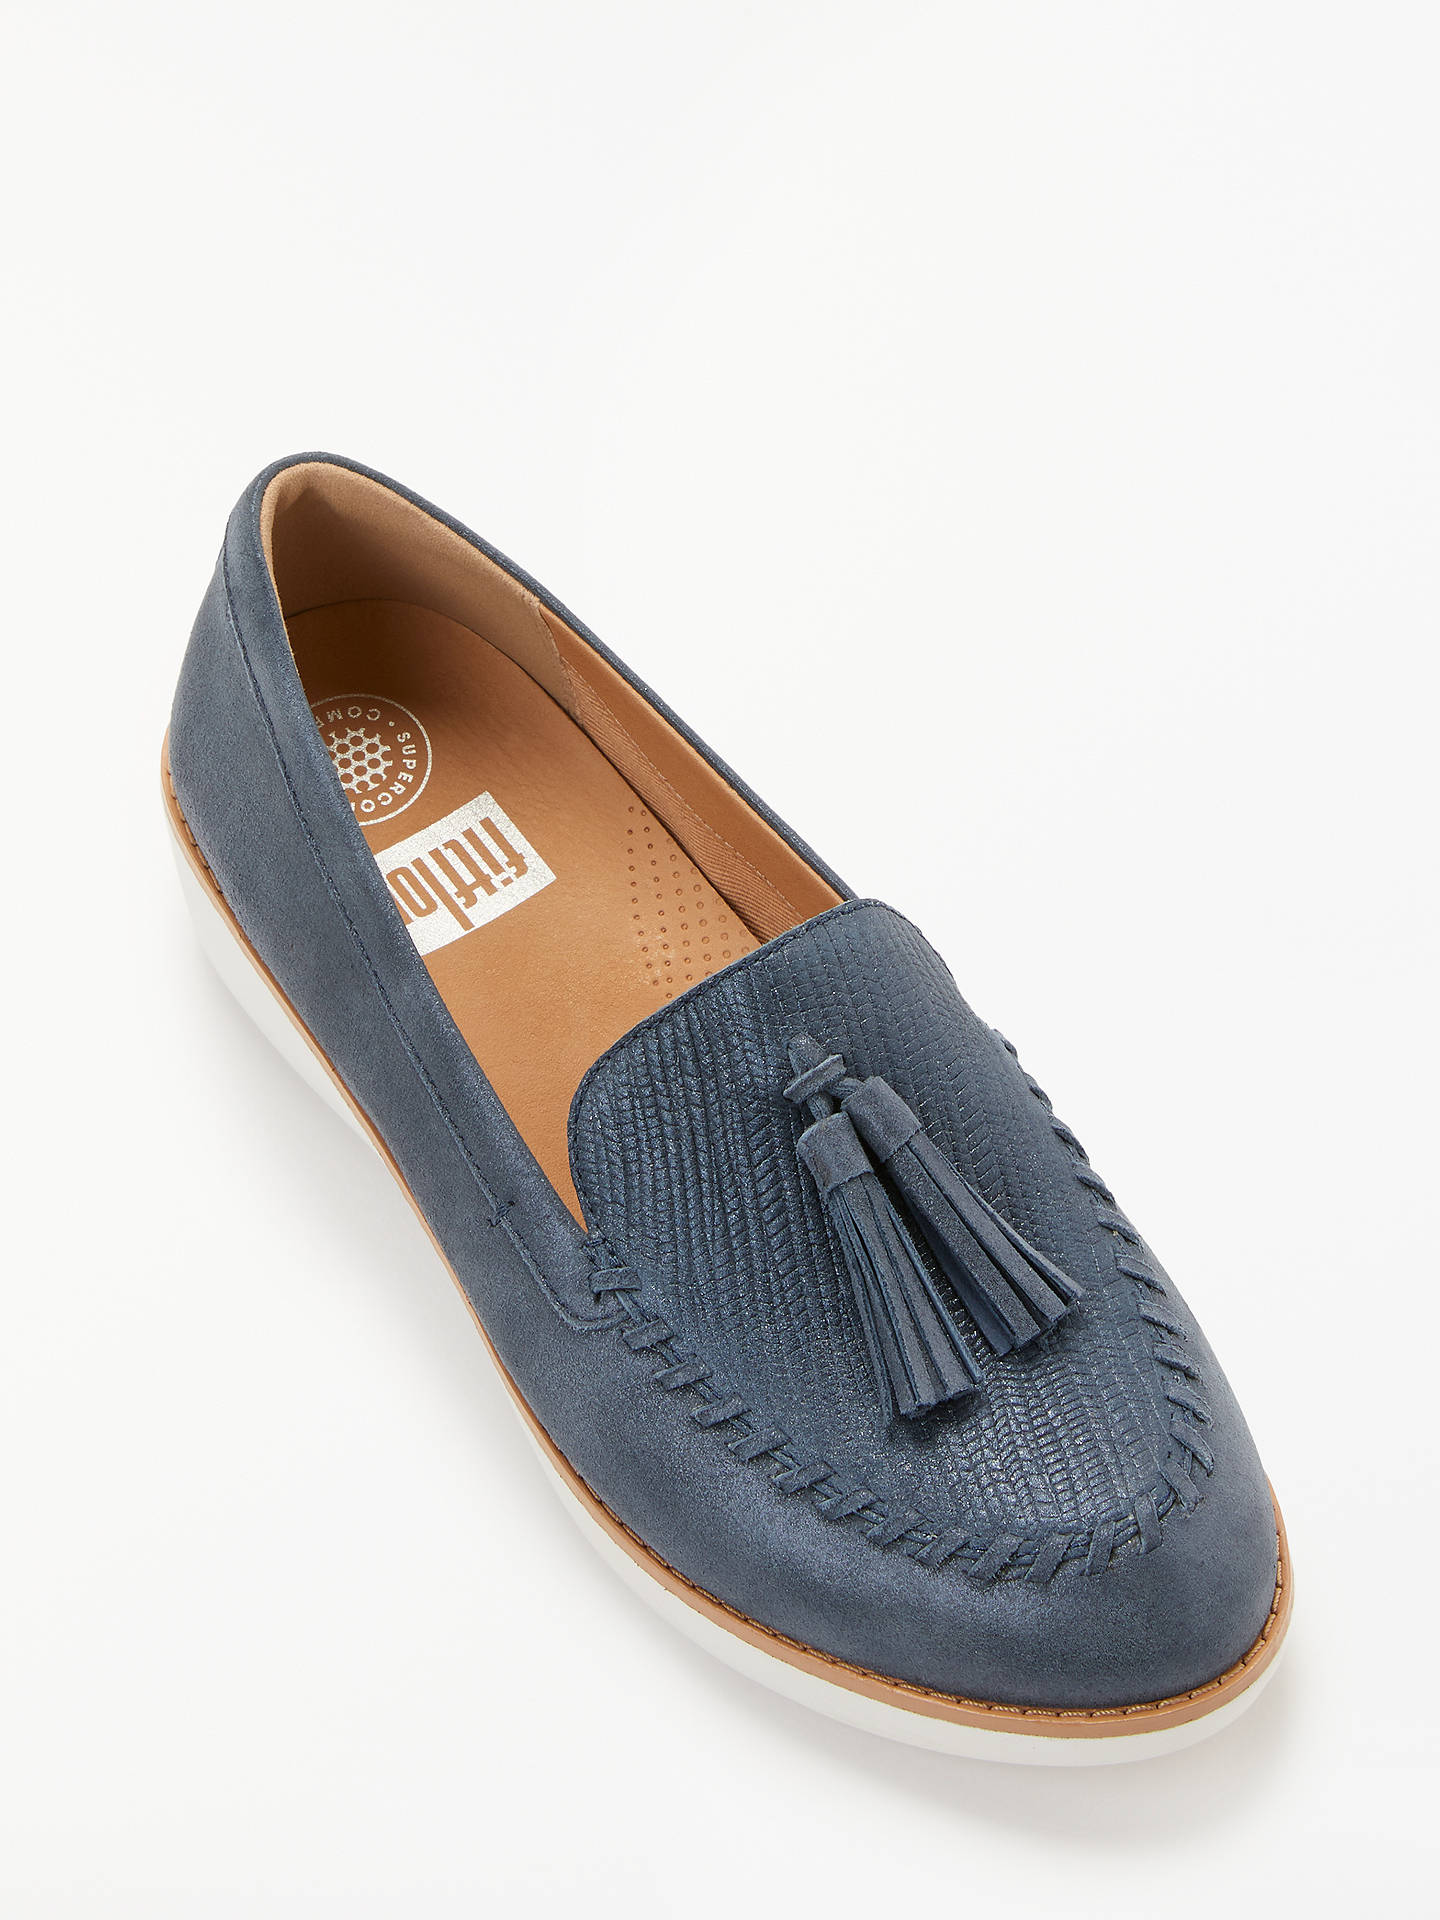 9d19f6fd655 FitFlop Paige Textured Metallic Tassel Loafers at John Lewis   Partners